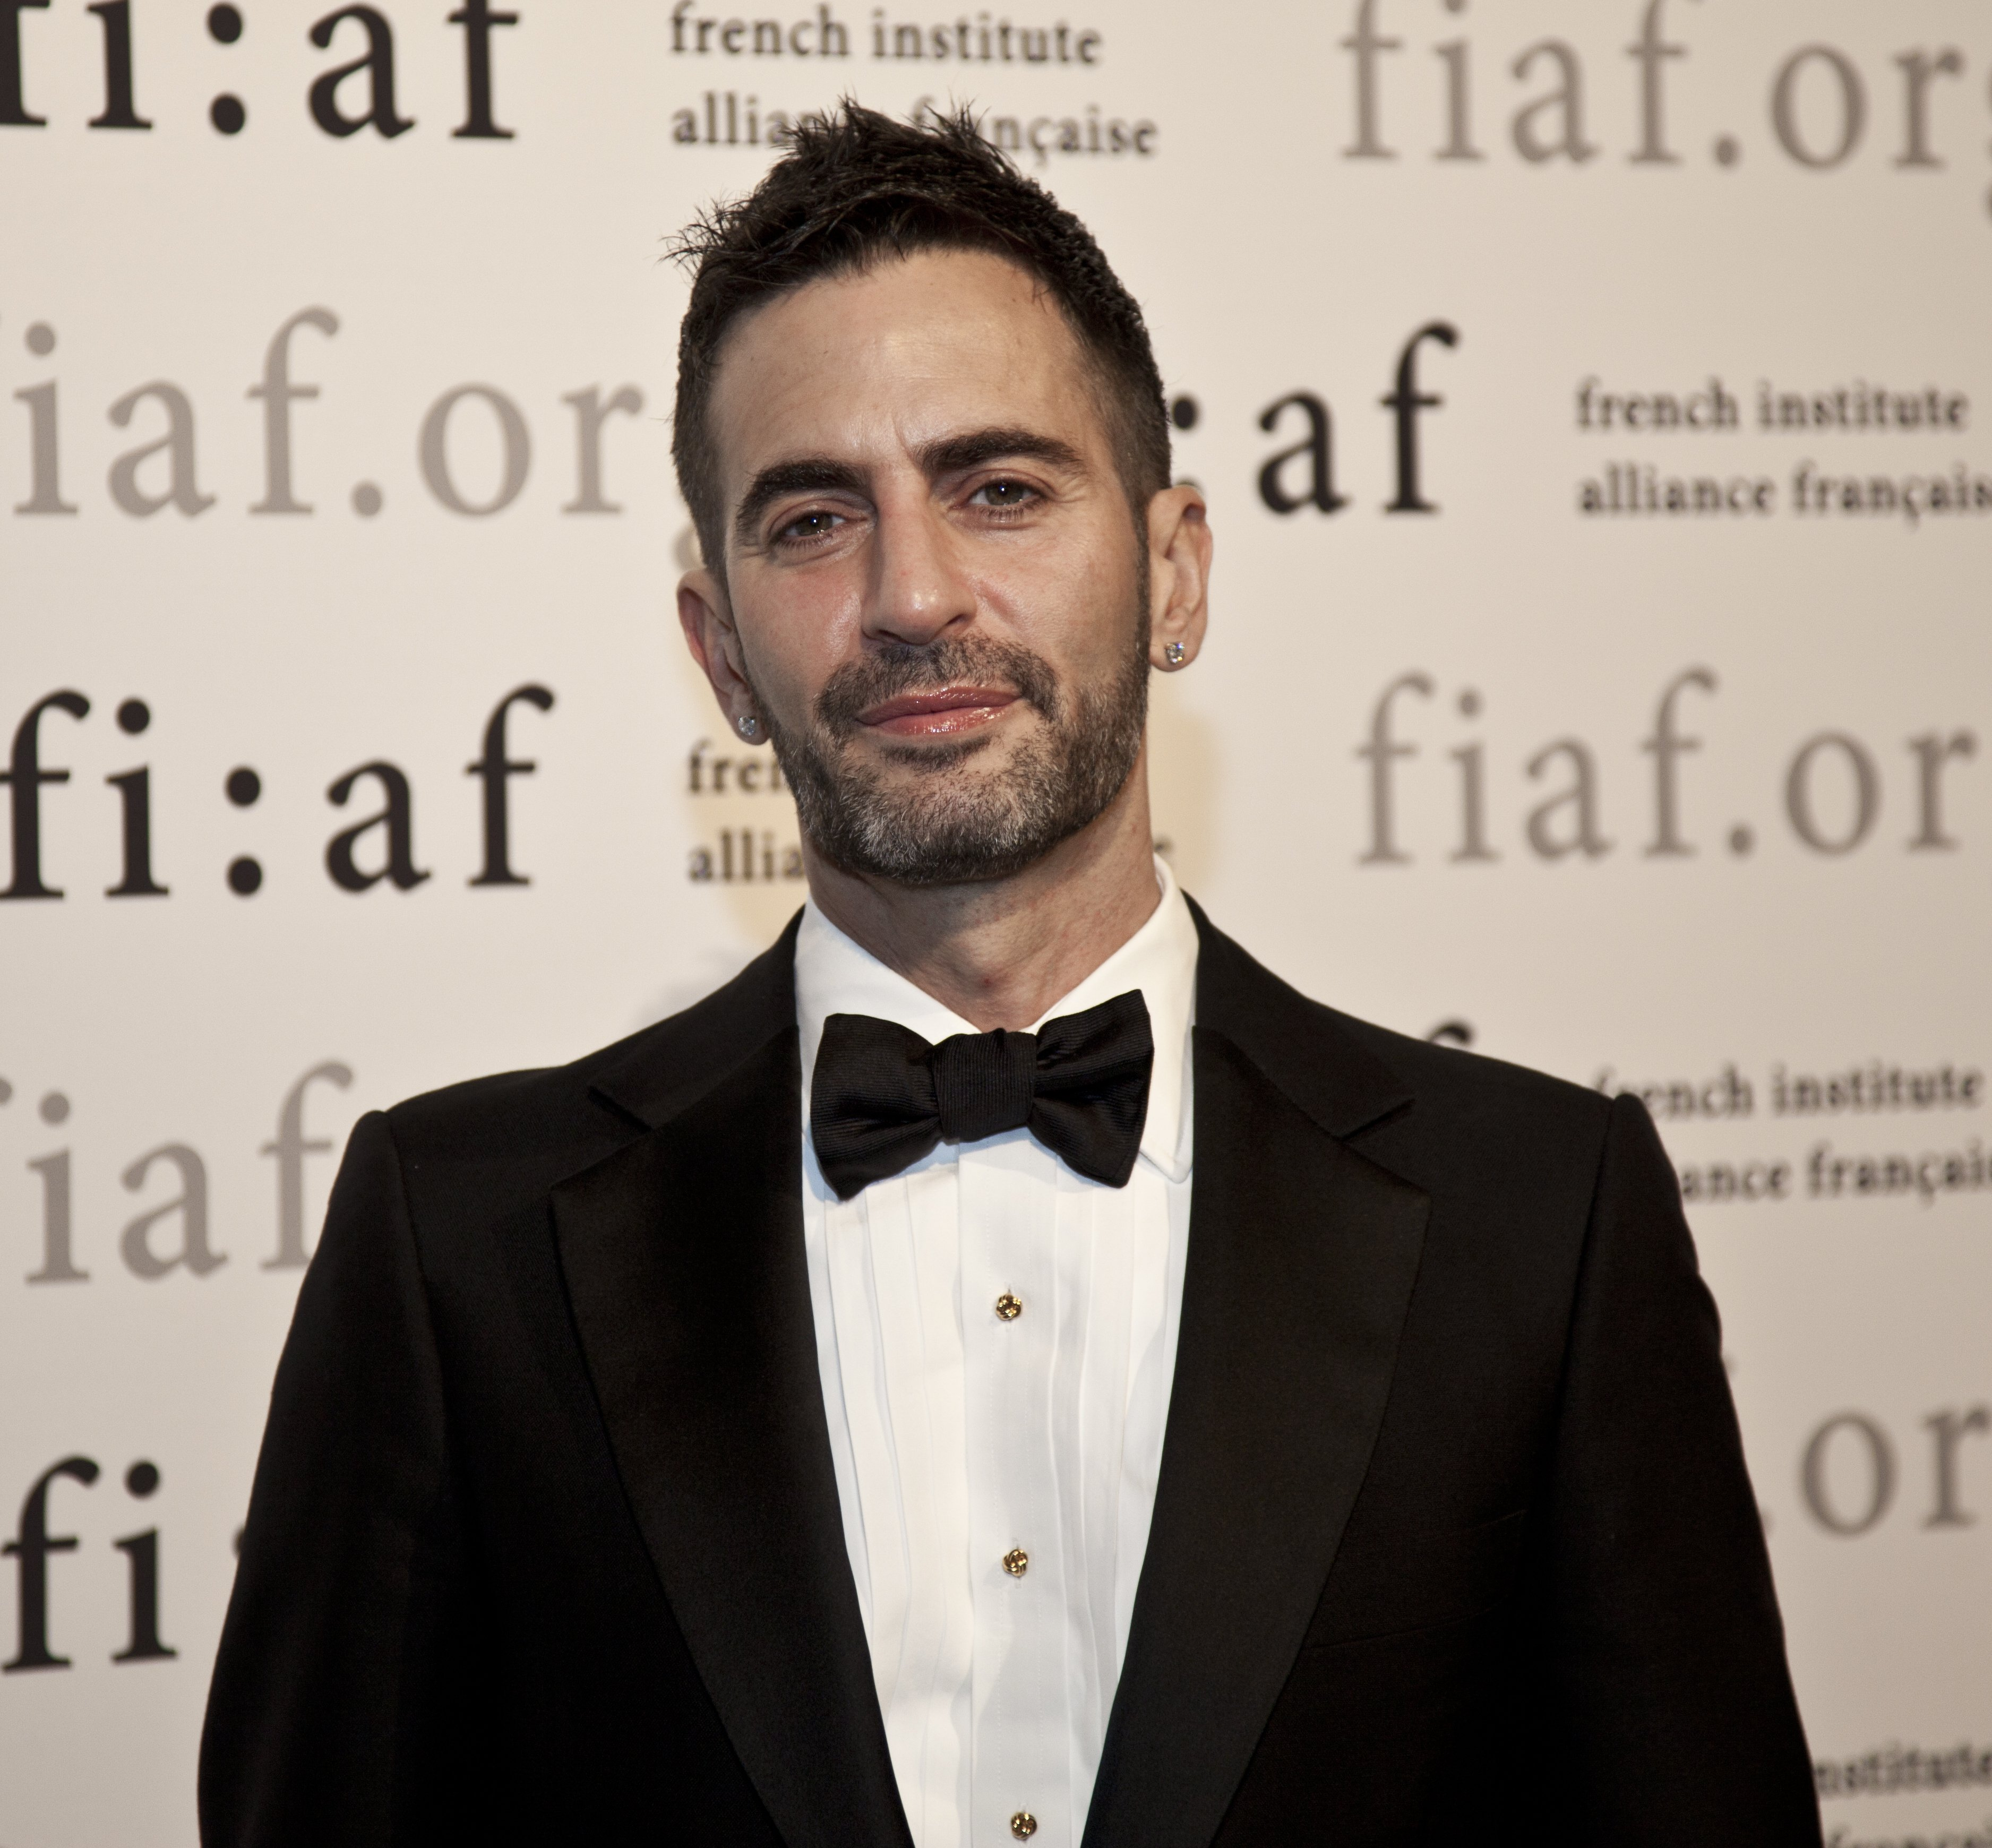 Fashion designer Marc Jacobs arrives at the 2010 FIAF Trophee des Arts presentation at the Plaza hotel on December 09, 2010 in New York City | Photo: Shutterstock